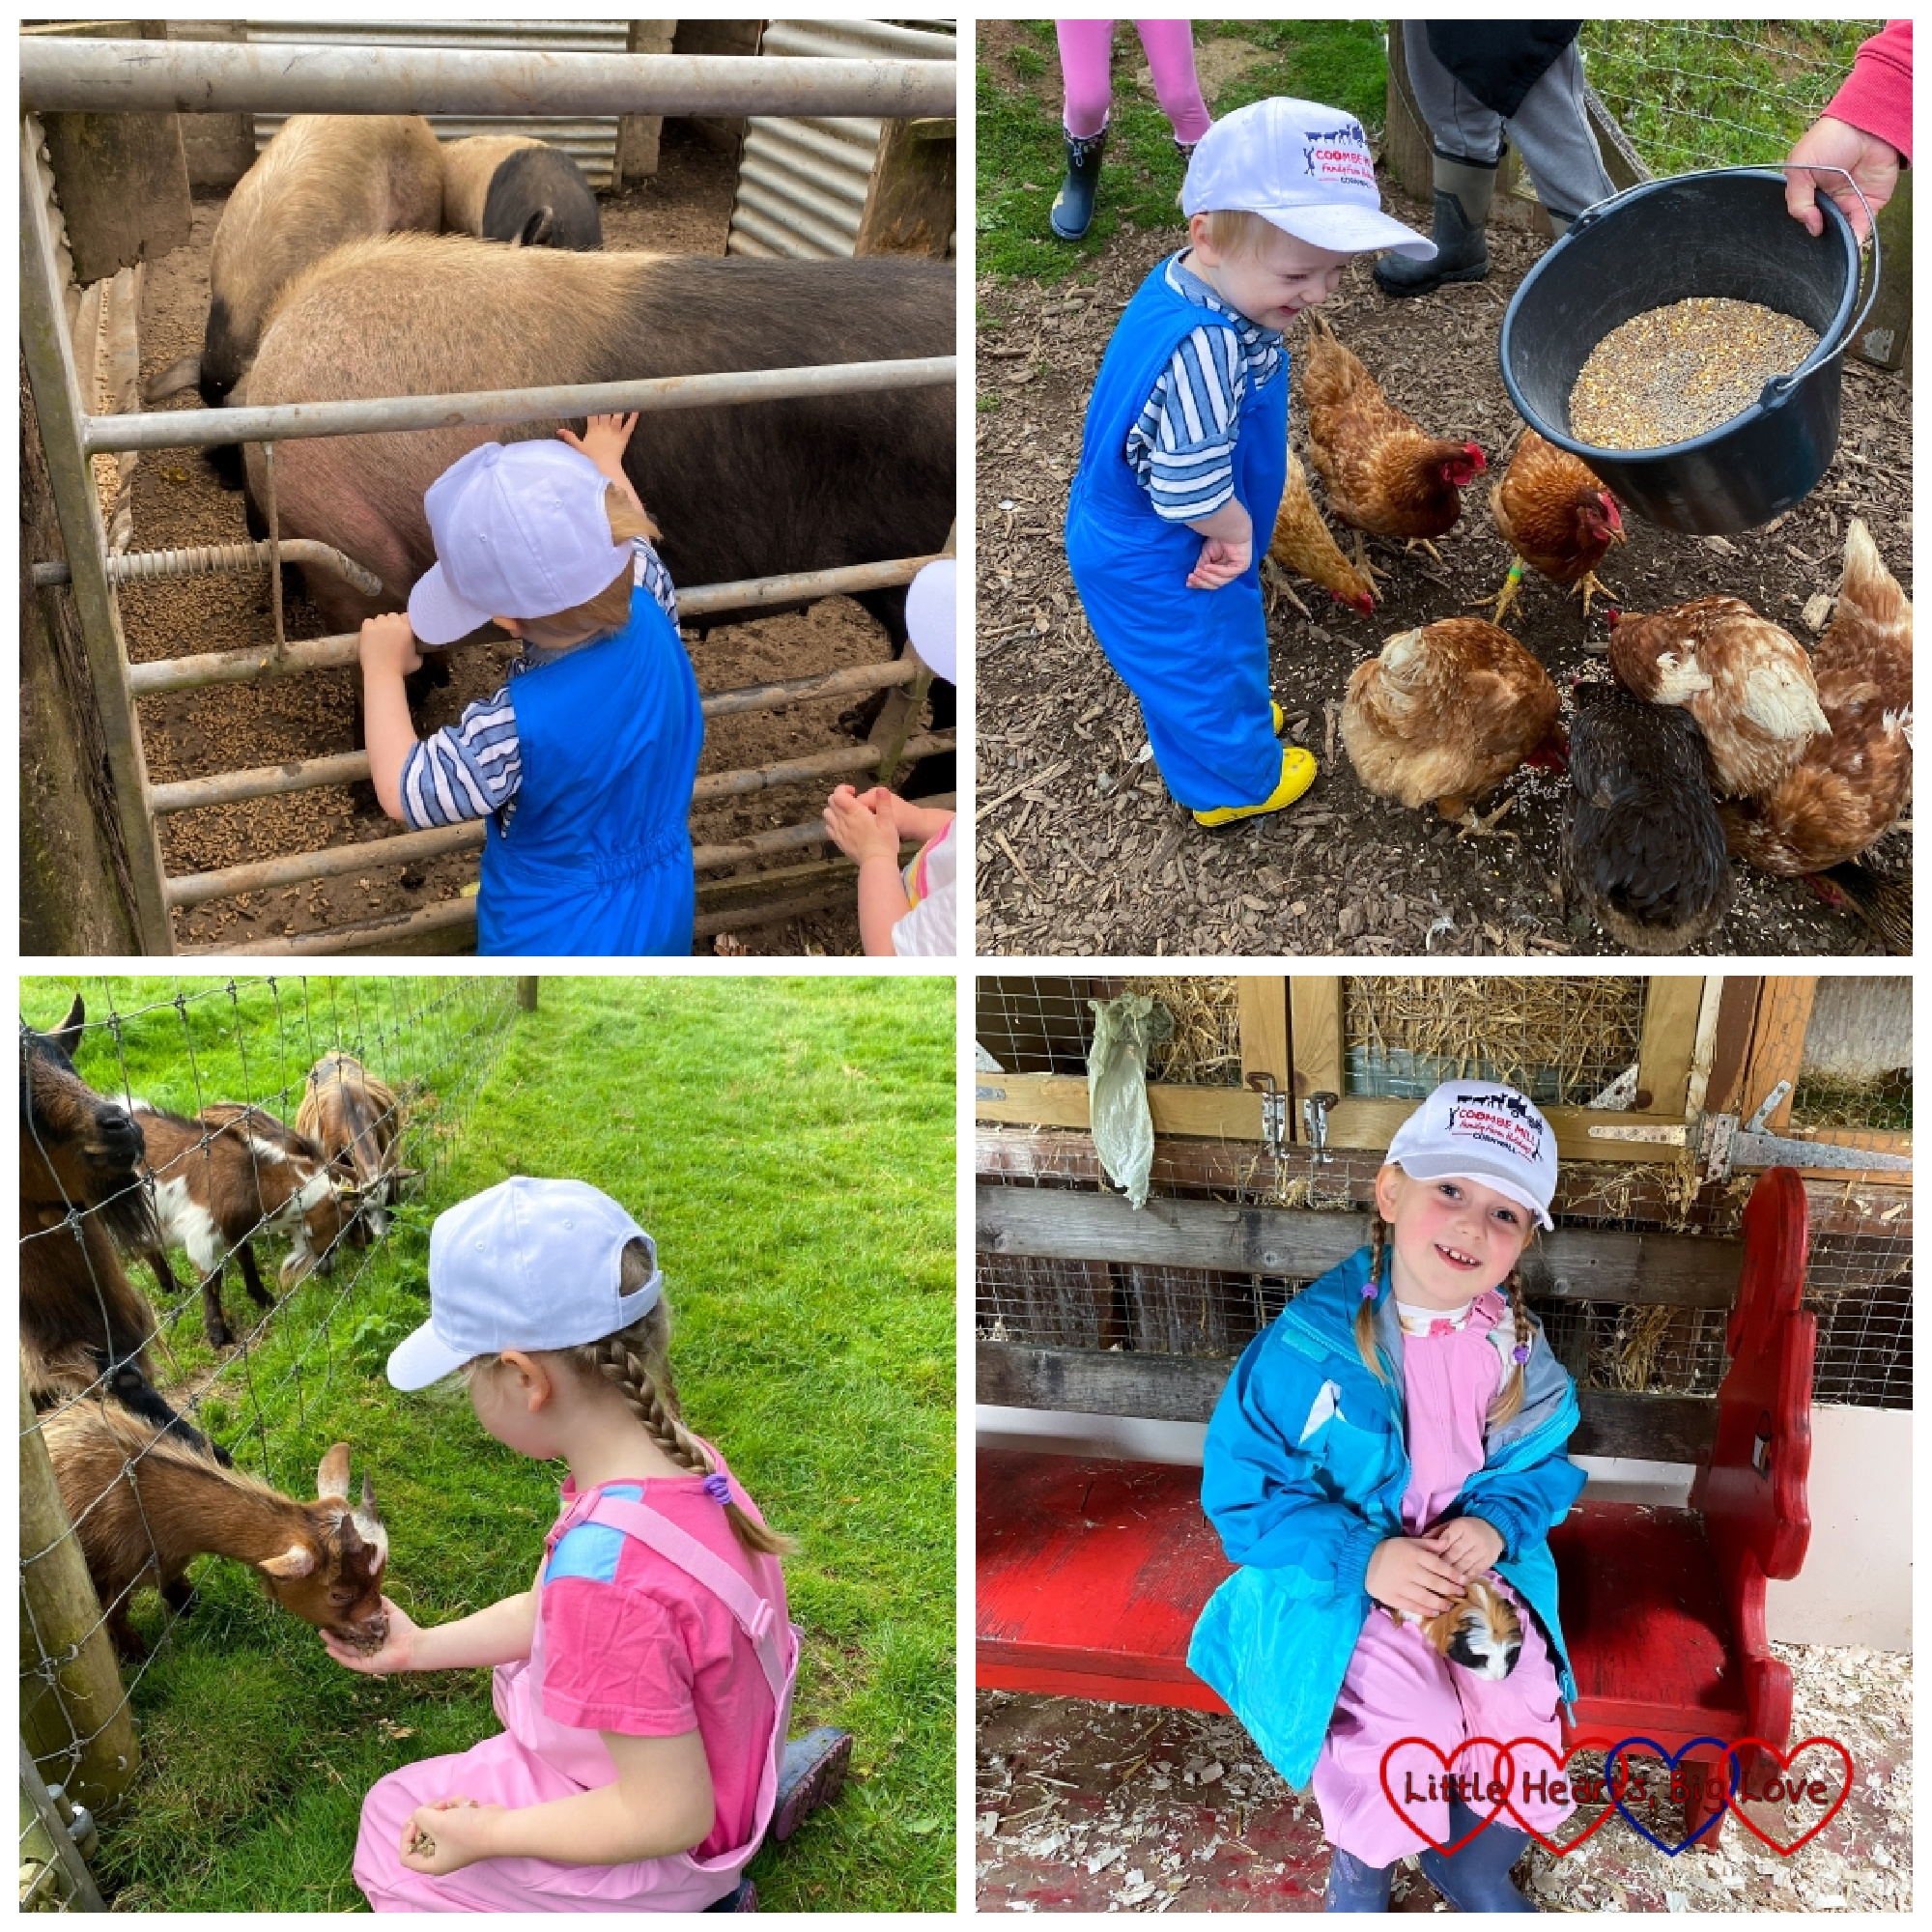 Thomas patting the pigs at Coombe Mill; Thomas feeding the chickens; Sophie feeding the goats and Sophie holding one of the guinea pigs